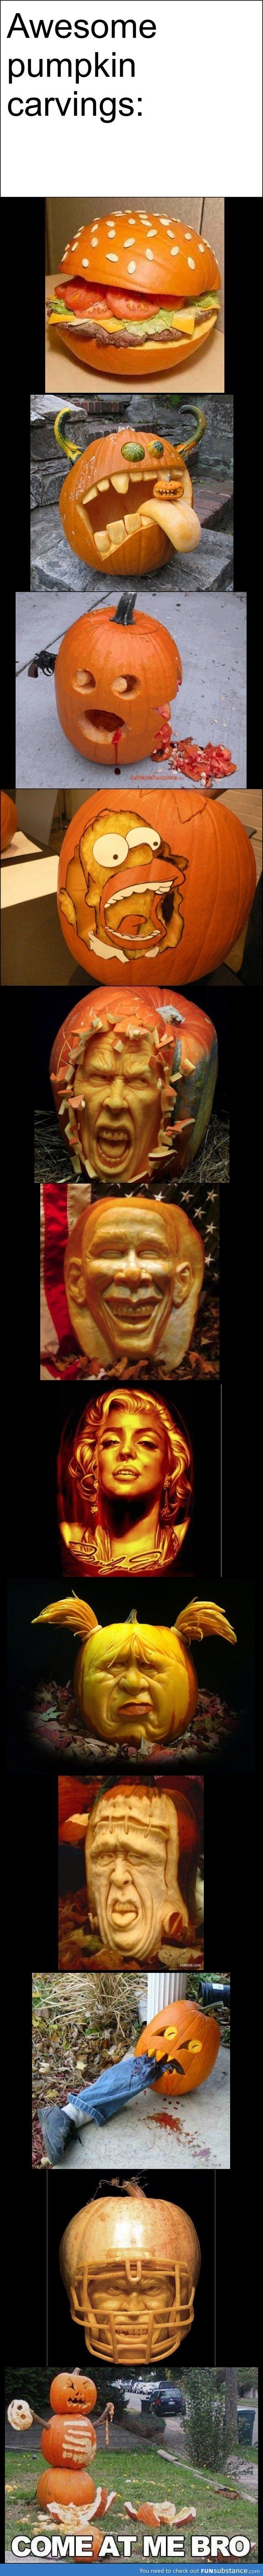 Awesome pumpkin carvings